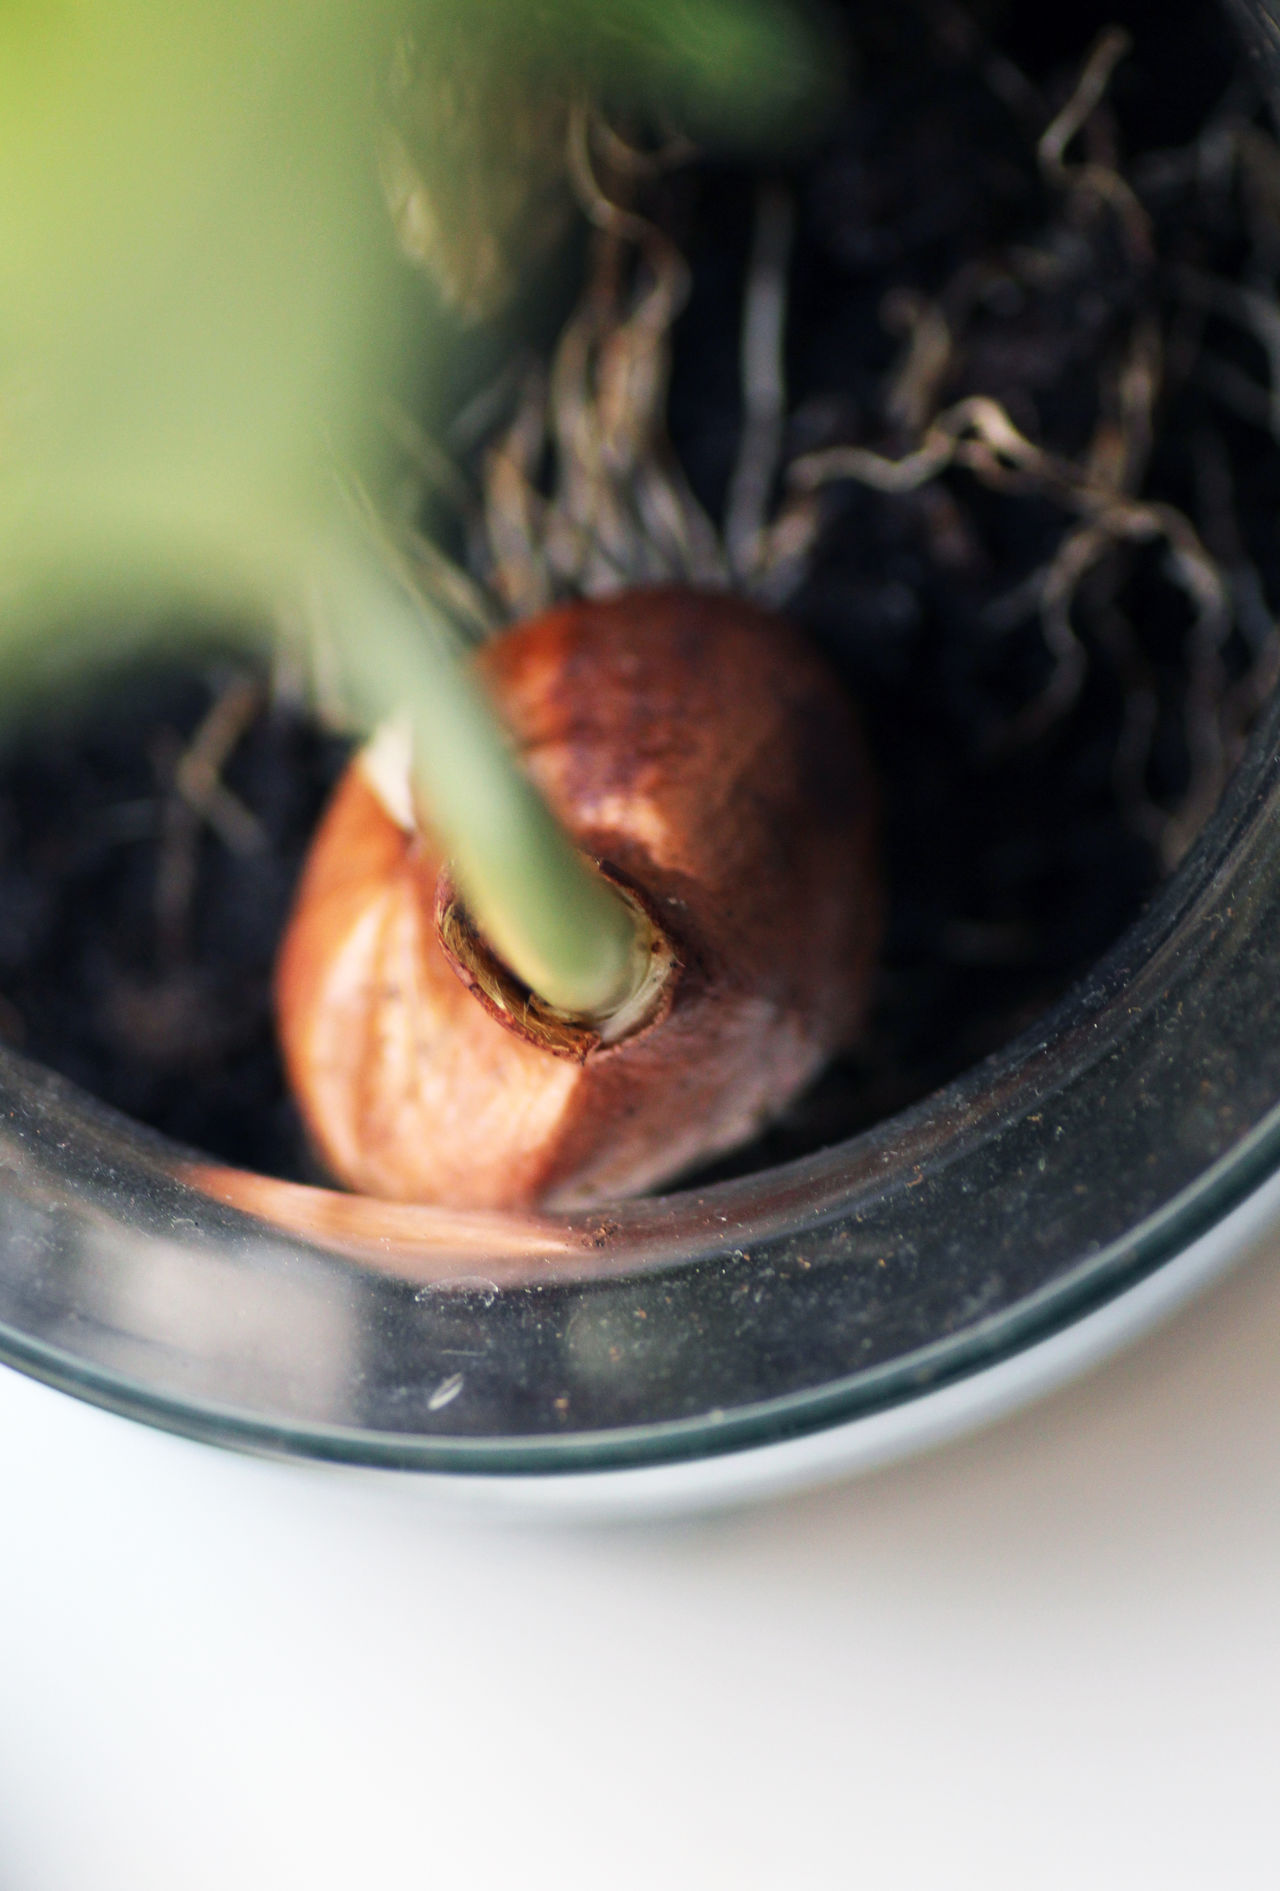 Plant Bird Perspective Bird´s Eye View Brown Close-up Day Earth Fertility Flowers Fruitfulness Garden Green Color Ground Growth Indoors  Jar Leaf Nature Nature Photography Nature_collection Plant Plant Pot Seeds Soil To Plant Something Tulip Onion